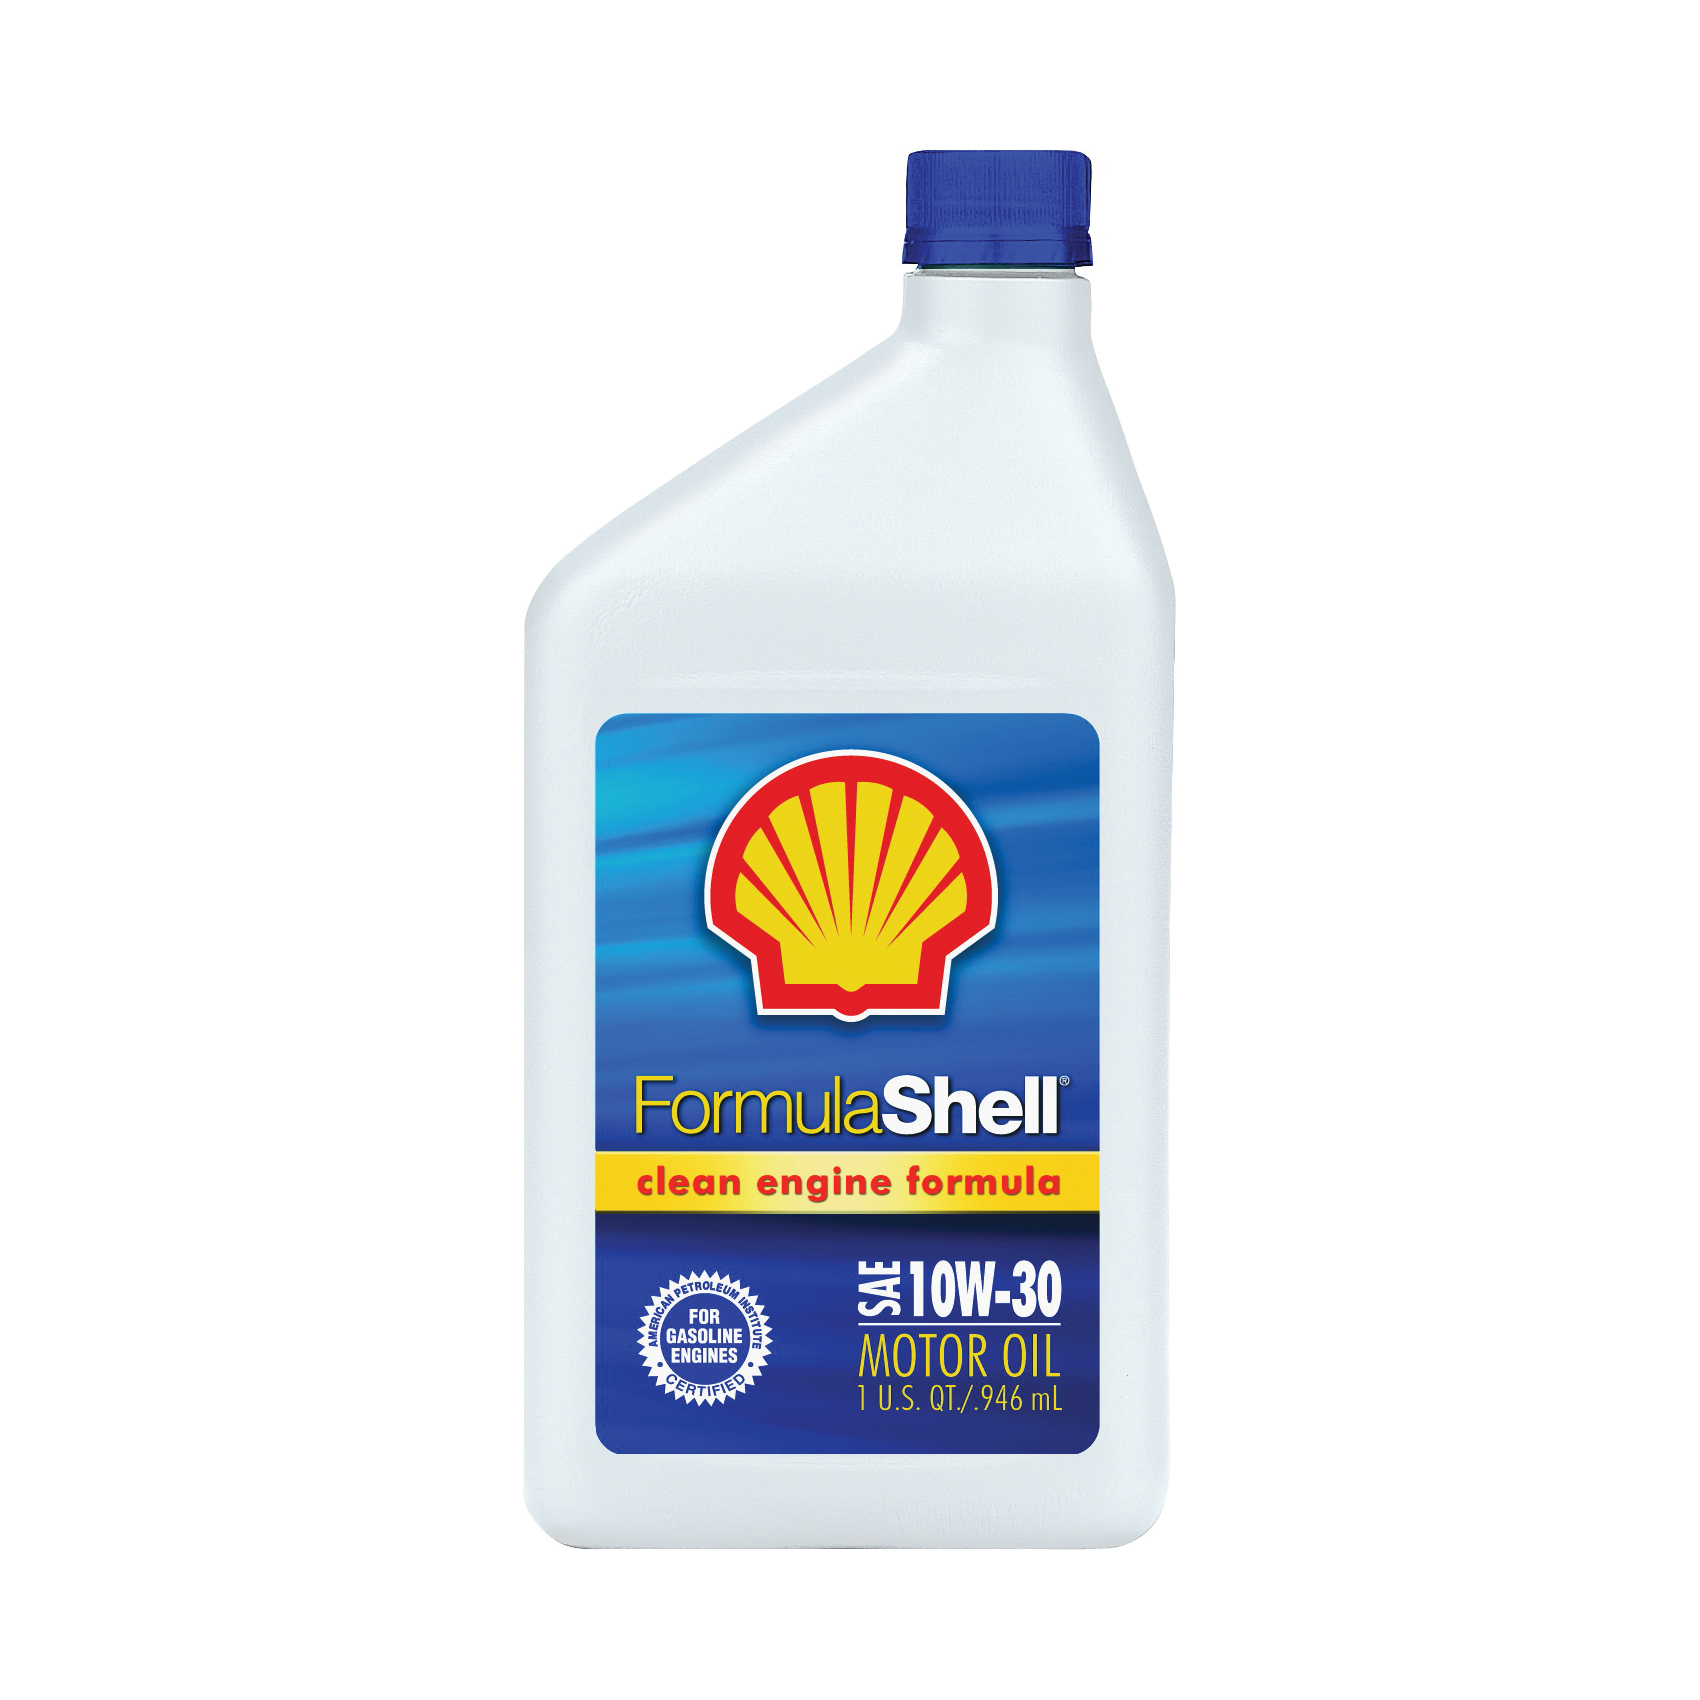 Picture of Formula Shell Clean Engine 550024081 Motor Oil, 10W-30, 1 qt Package, Bottle